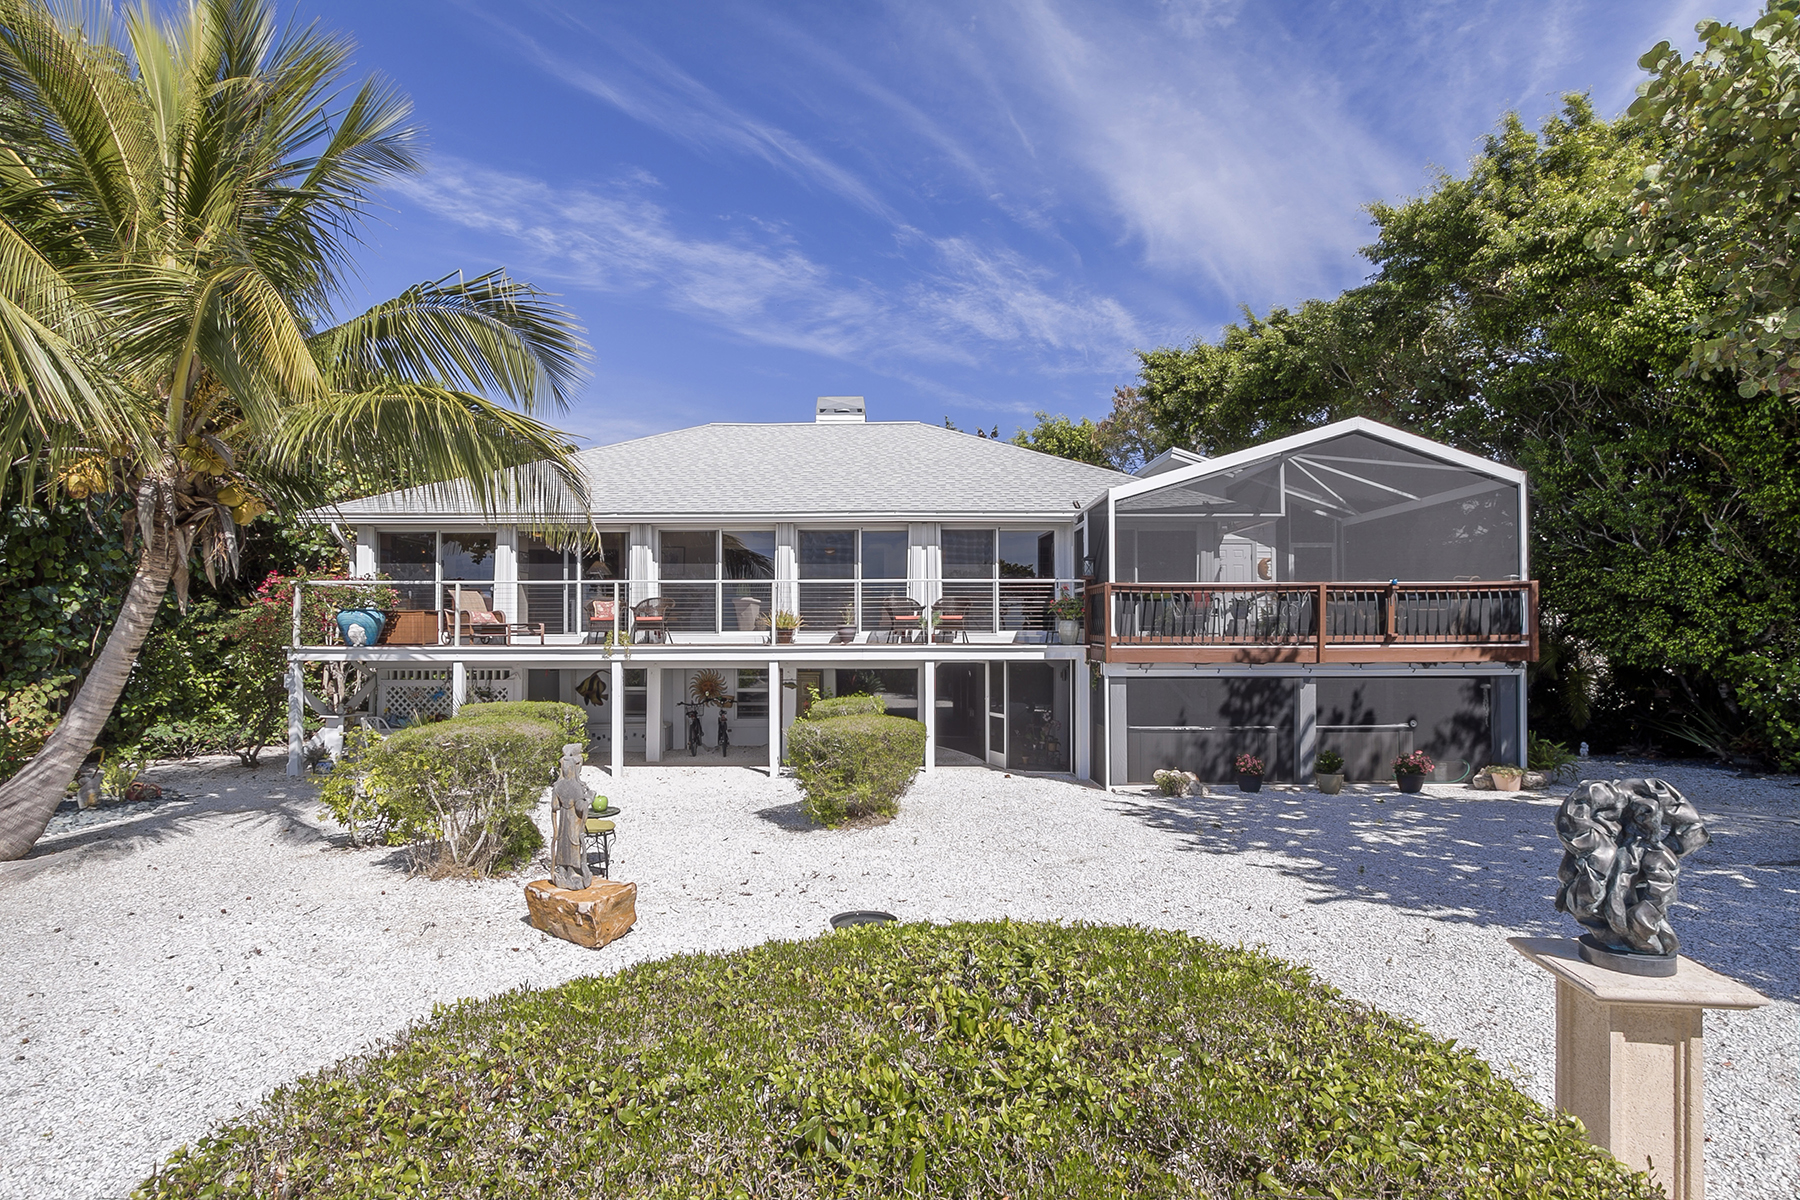 Single Family Home for Sale at SEASIDE - SANIBEL Sanibel, Florida 33957 United States